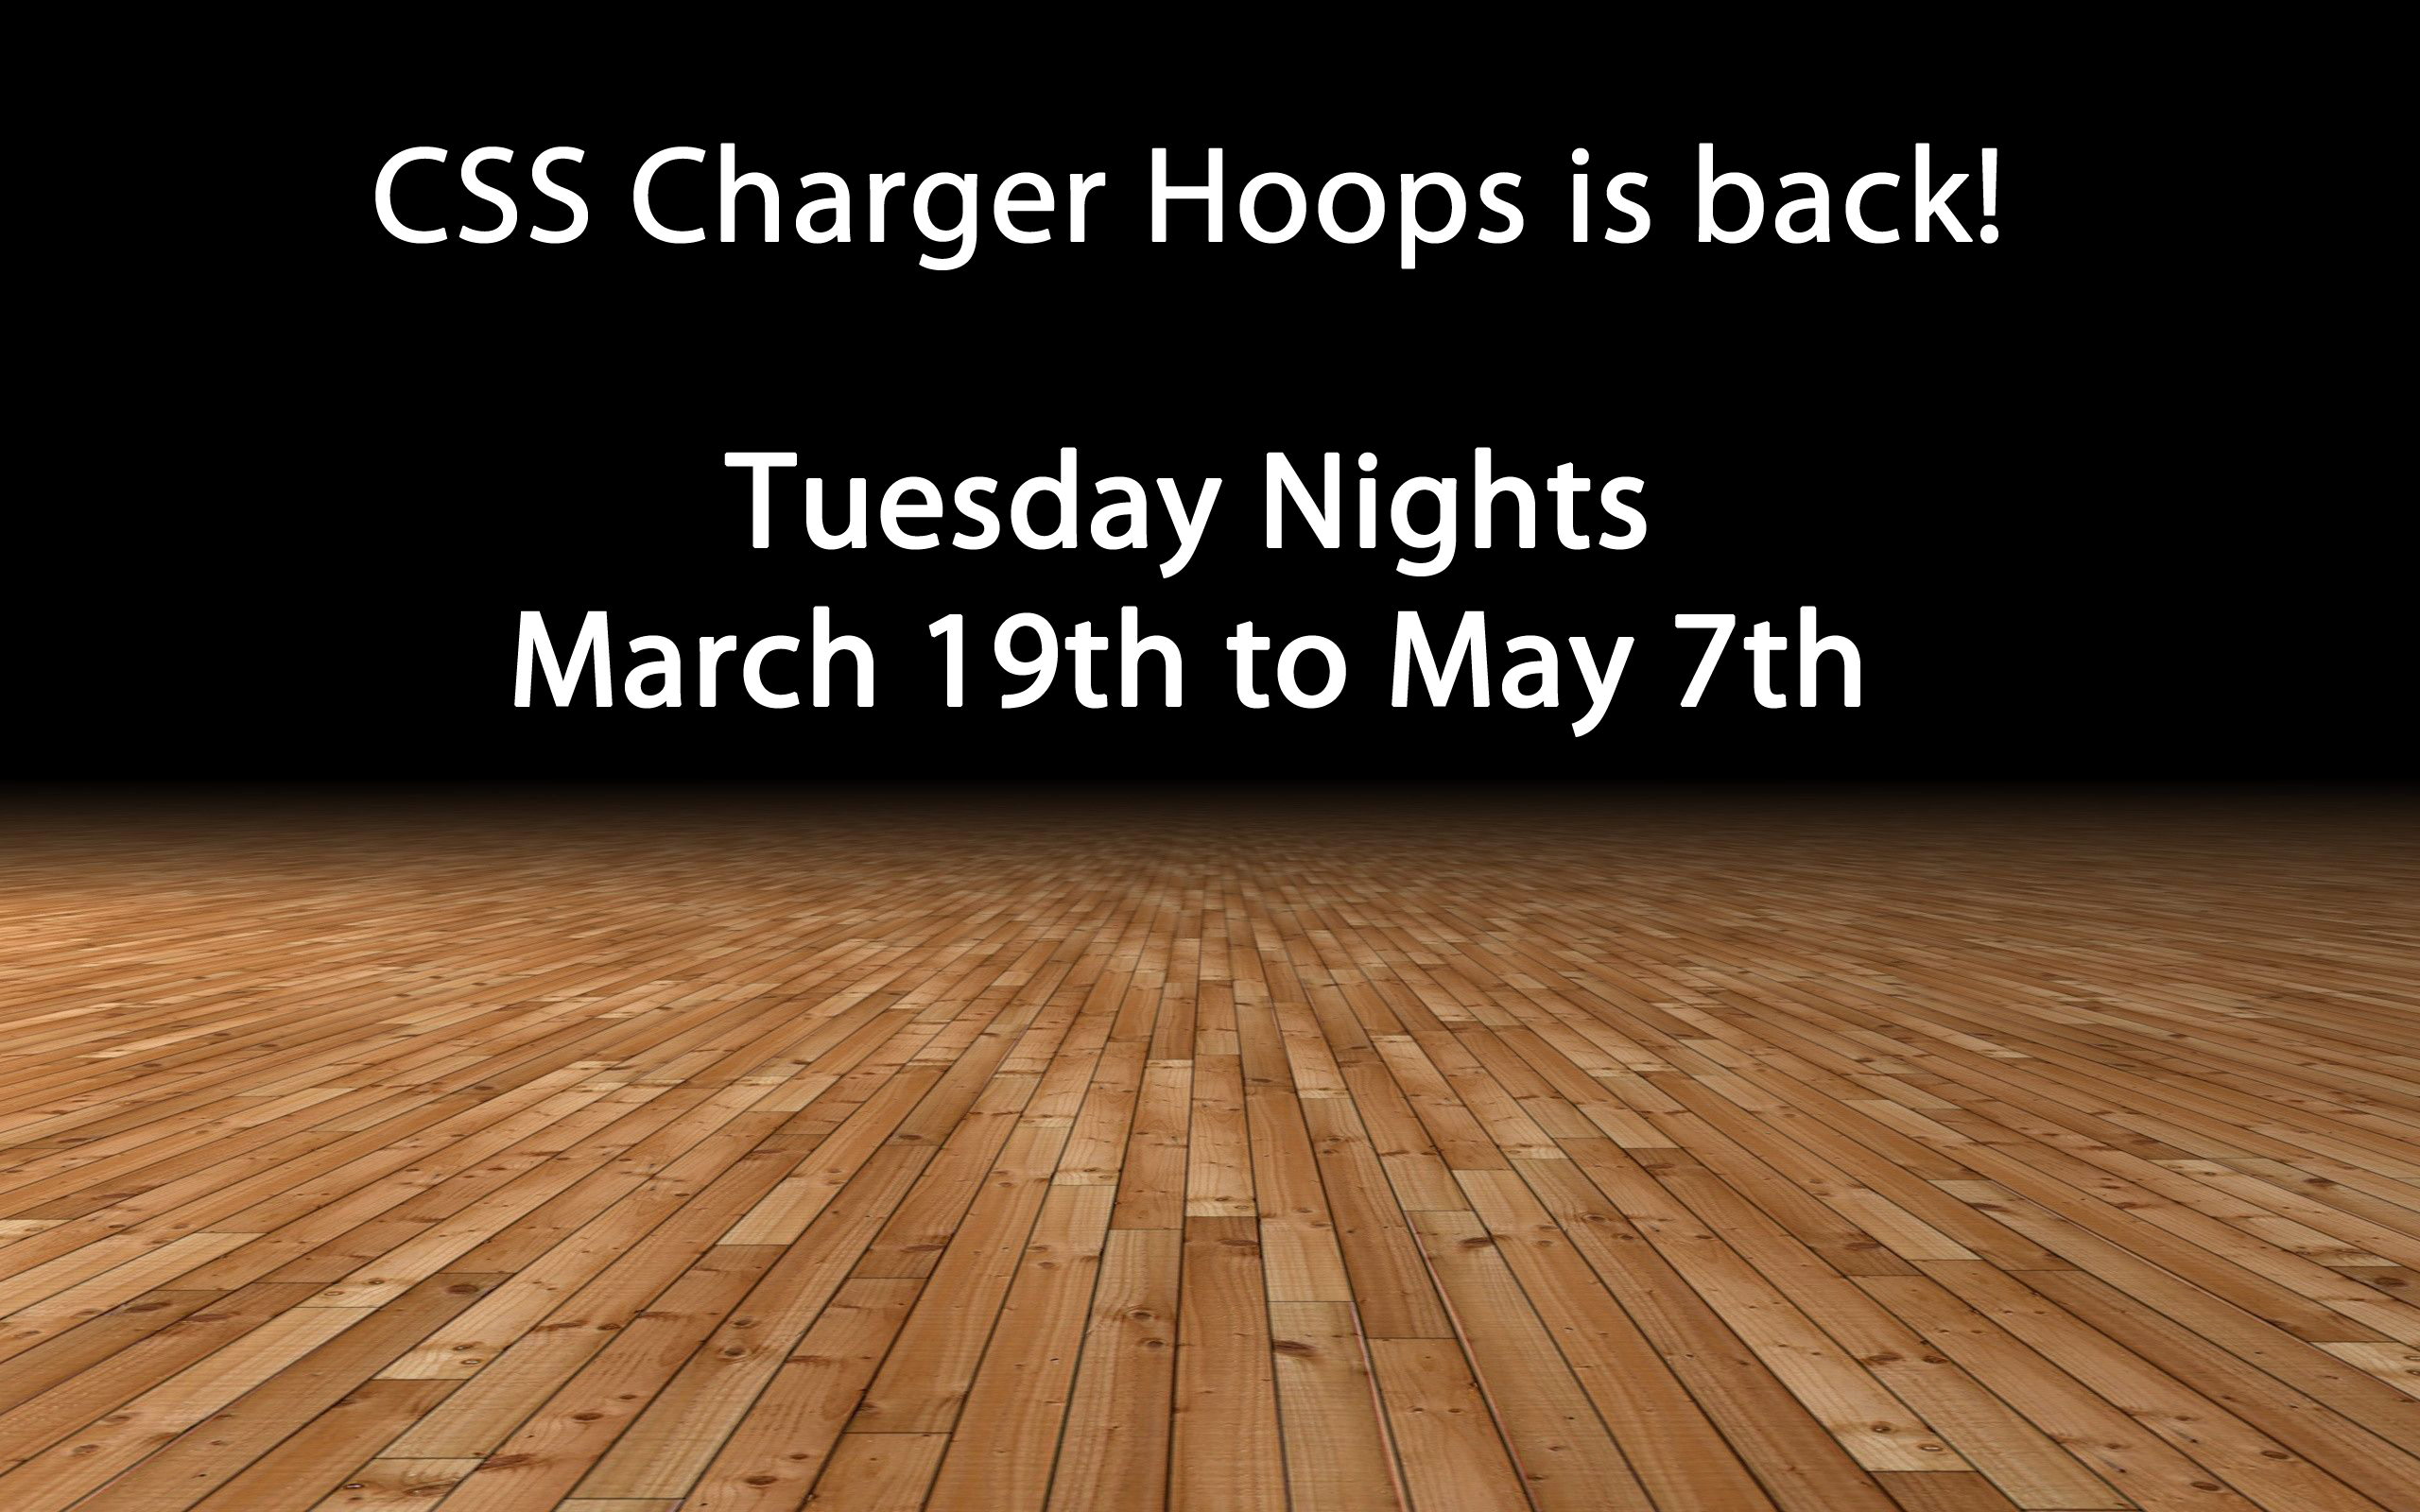 Charger Hoops is Back